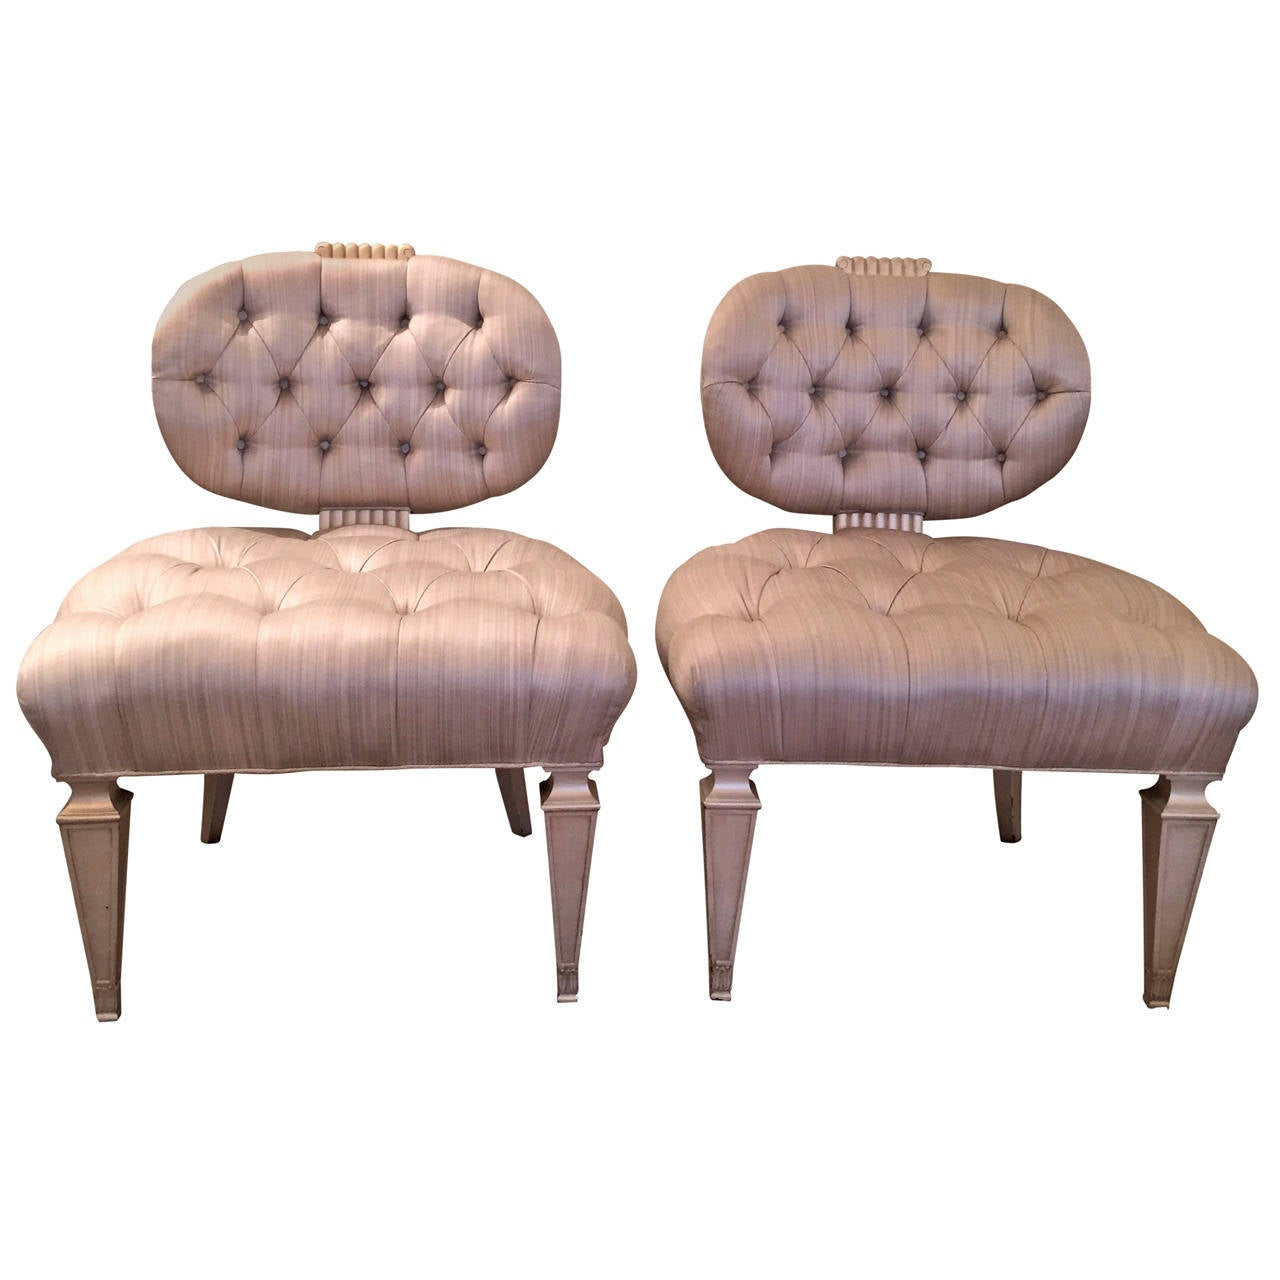 Tufted Slipper Chair Pair Of Grosfeld House Tufted Slipper Chairs For Sale At